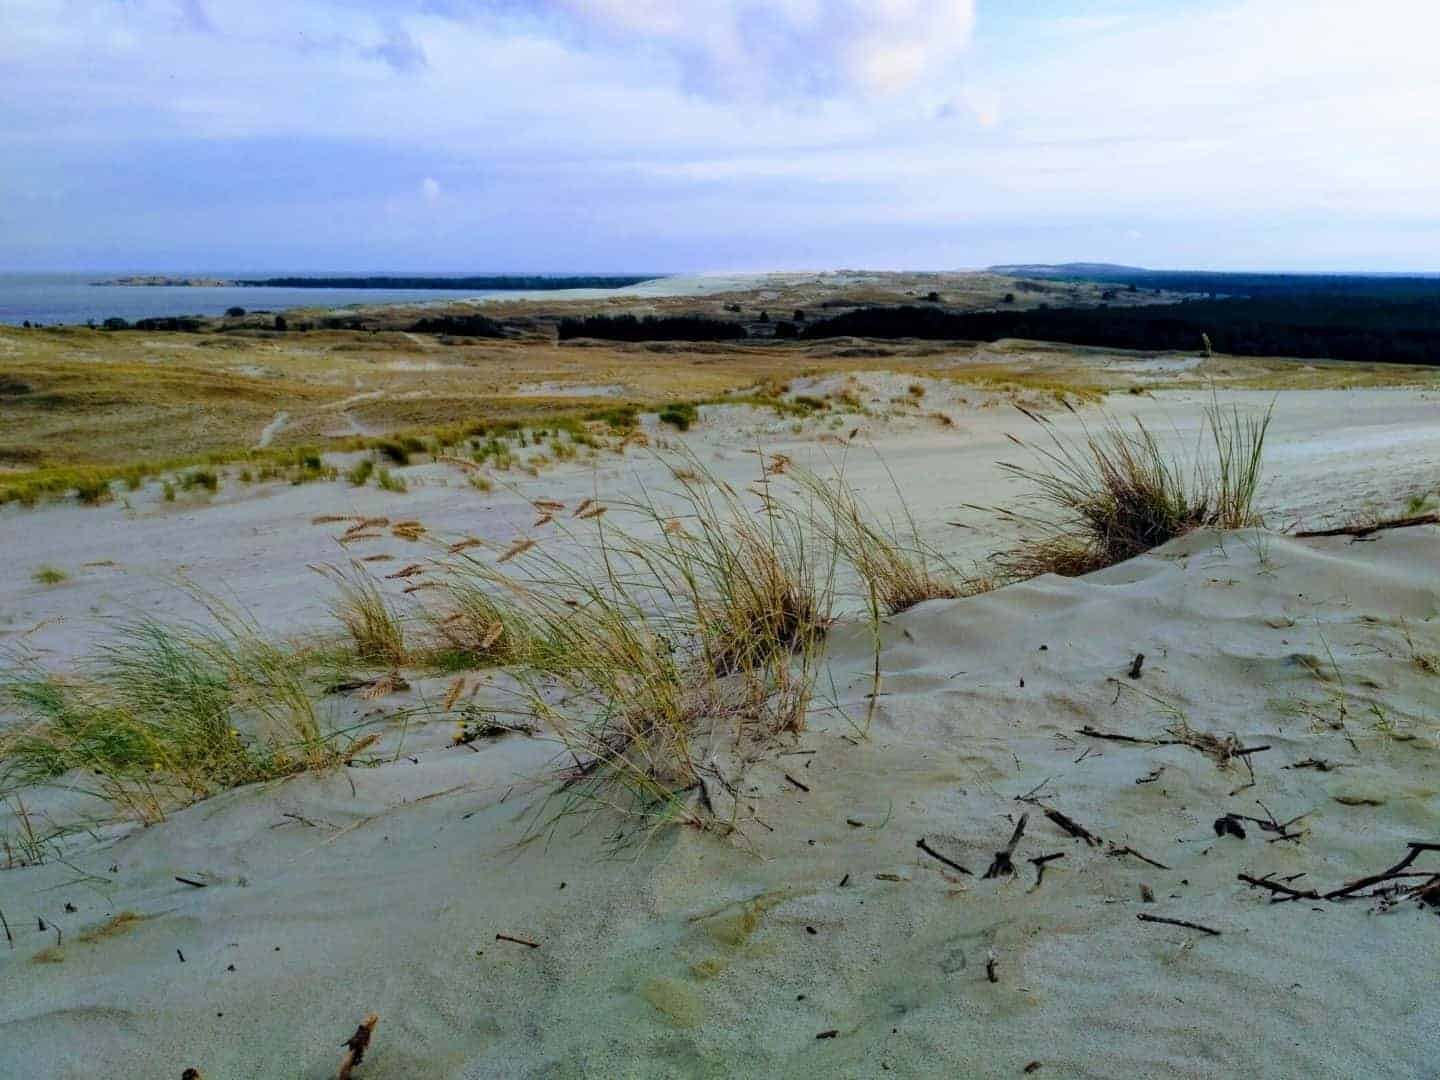 Sand dunes in Curonian Spit, Lithuania